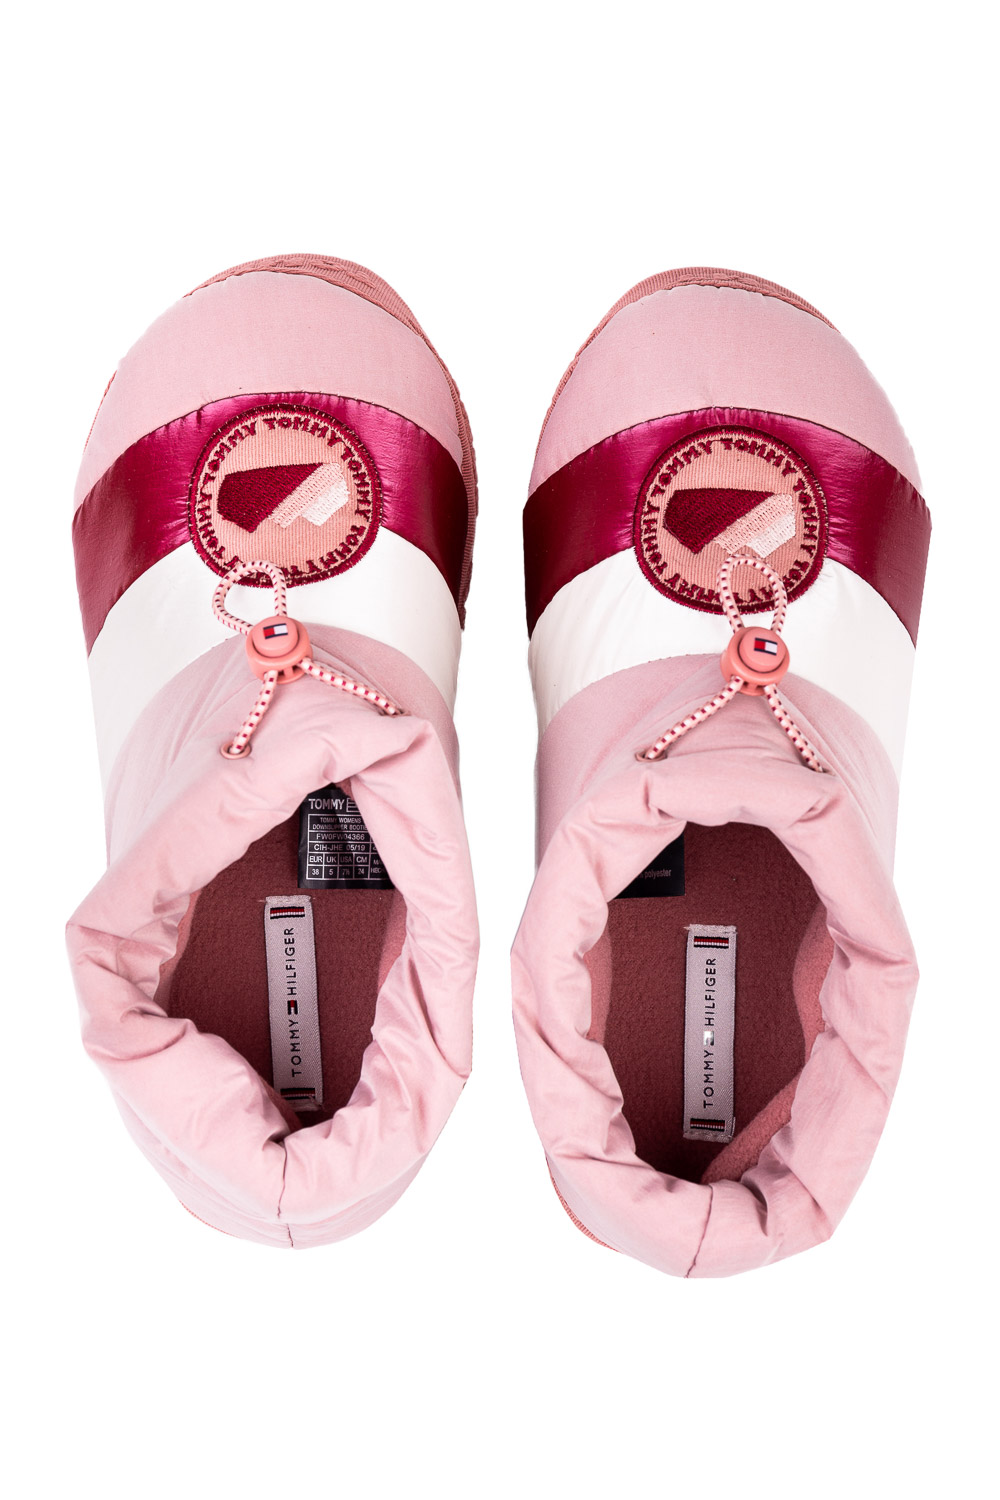 Tommy Hilfiger ciabatte a stivaletto Tommy Womens Downslipper Bootie Blush Pink cipria